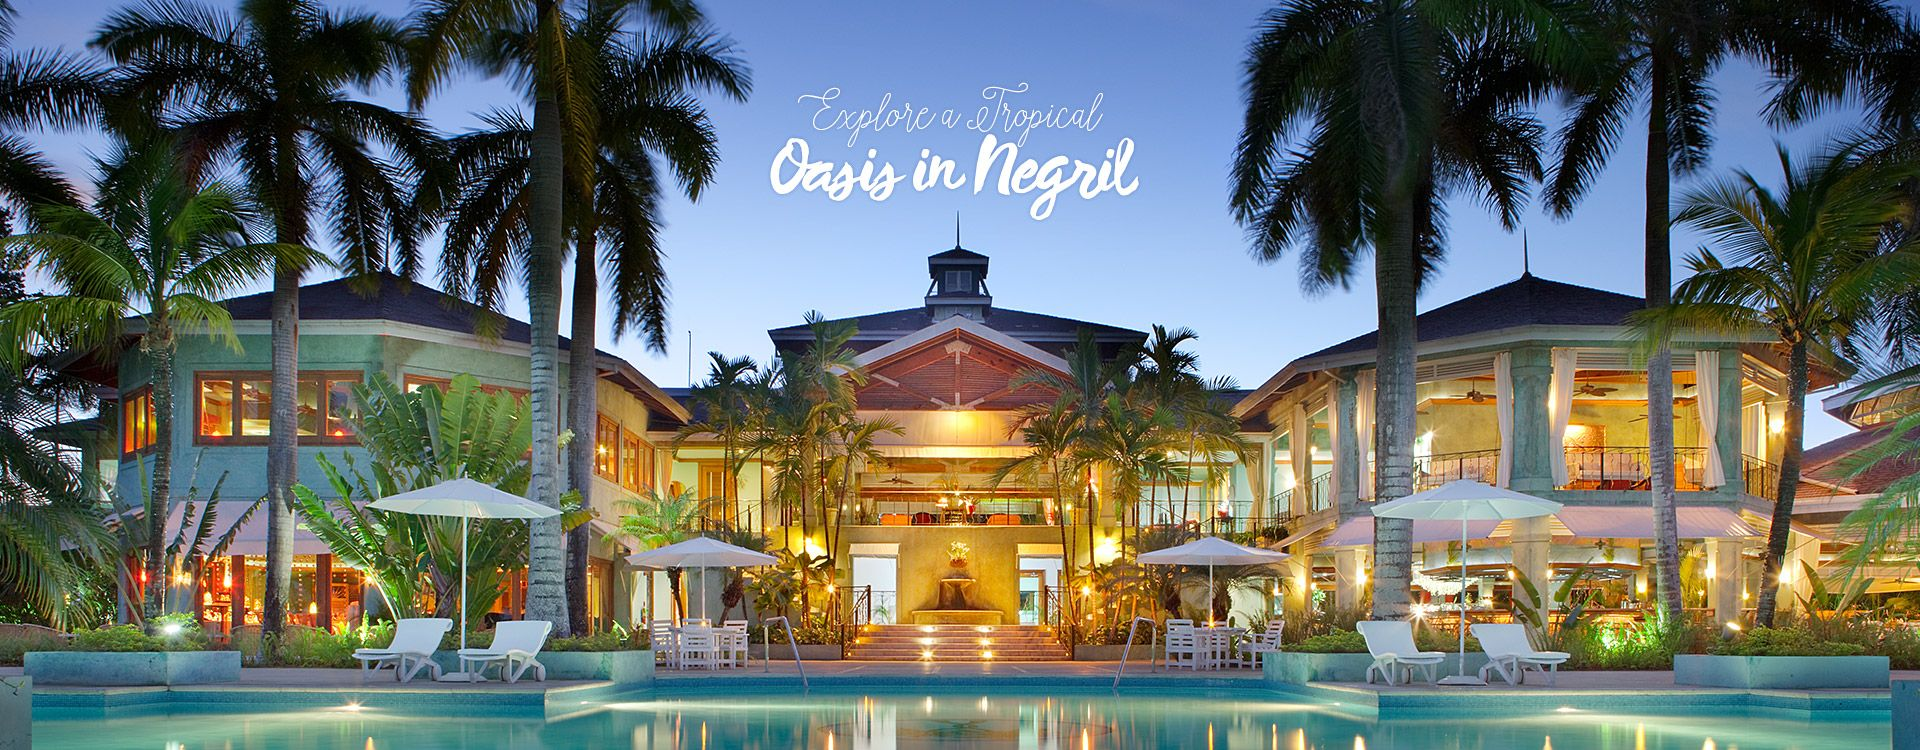 Couples swept away negril jamaica hotels all inclusive vacation resorts at negril